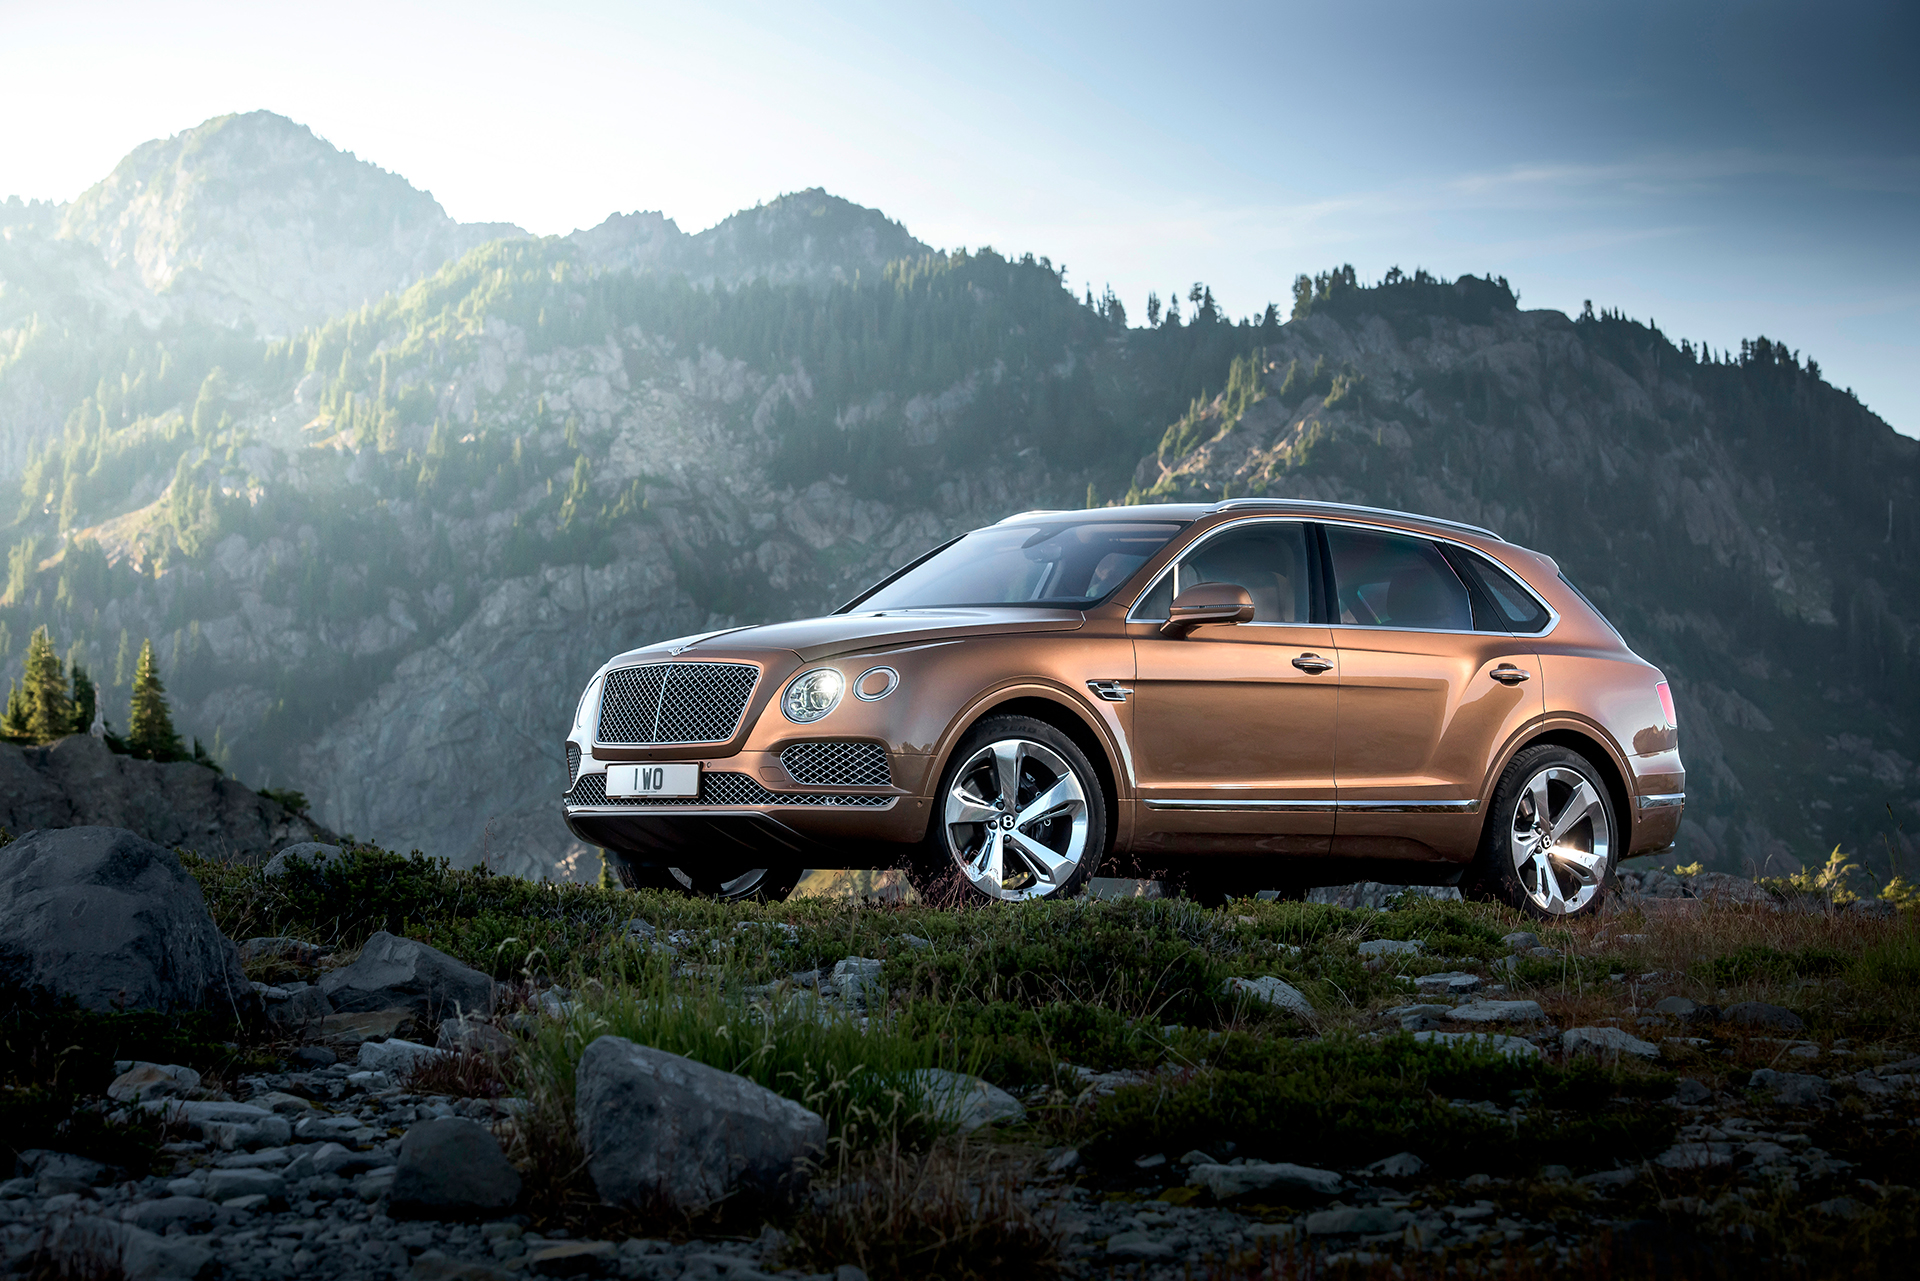 Bentley Bentayga - side-face / profil